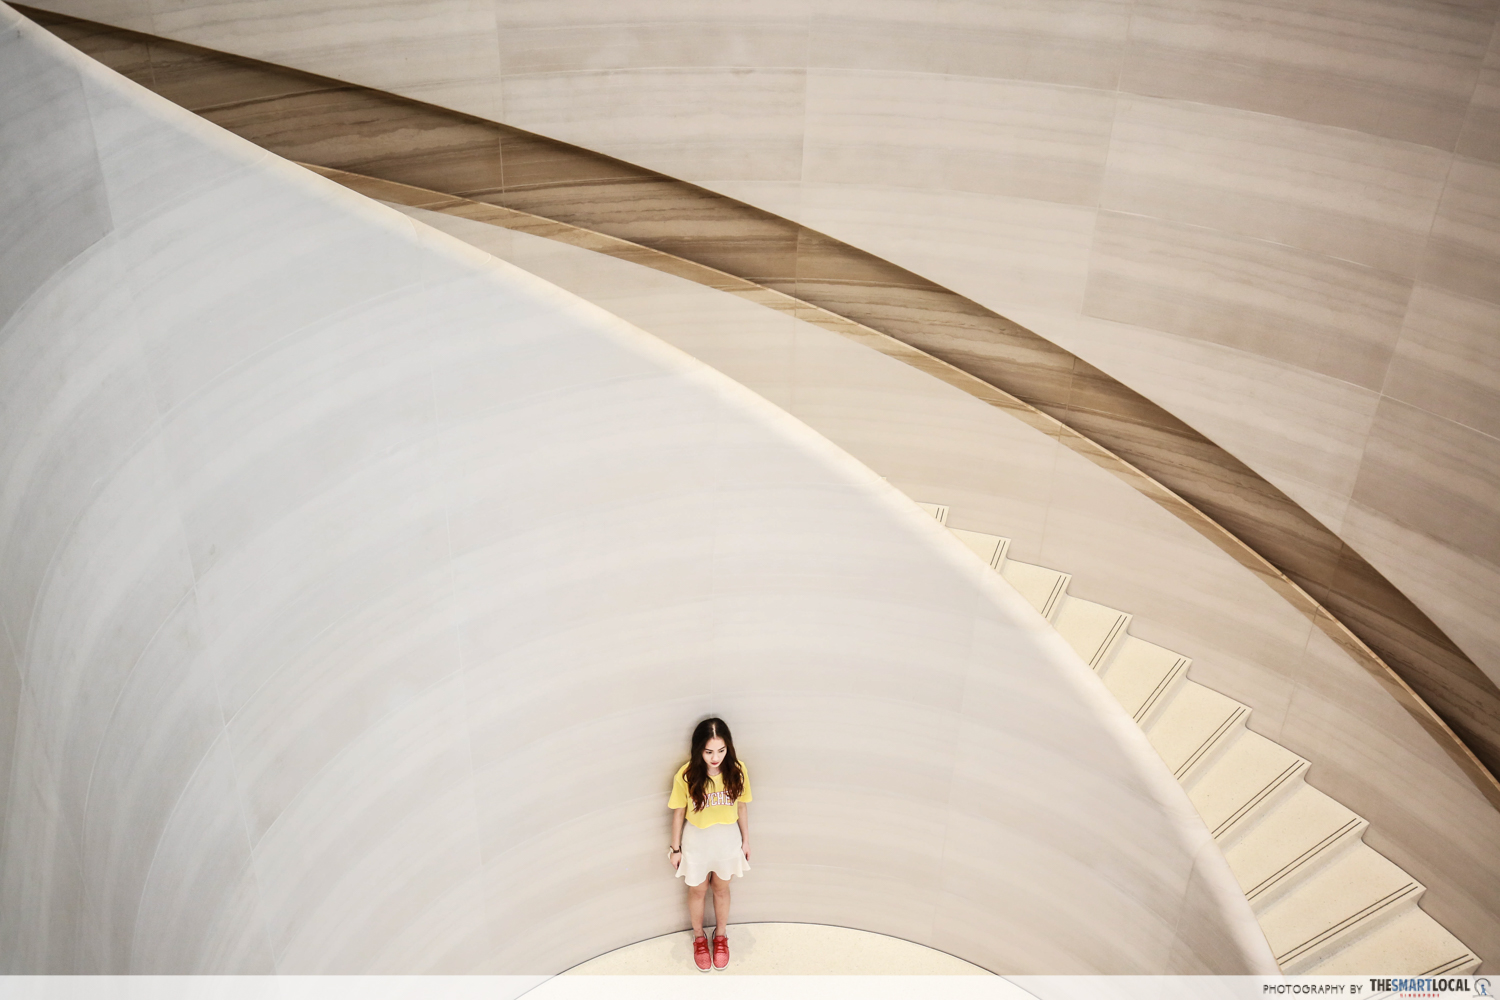 Chio Staircase - Apple Top Shot